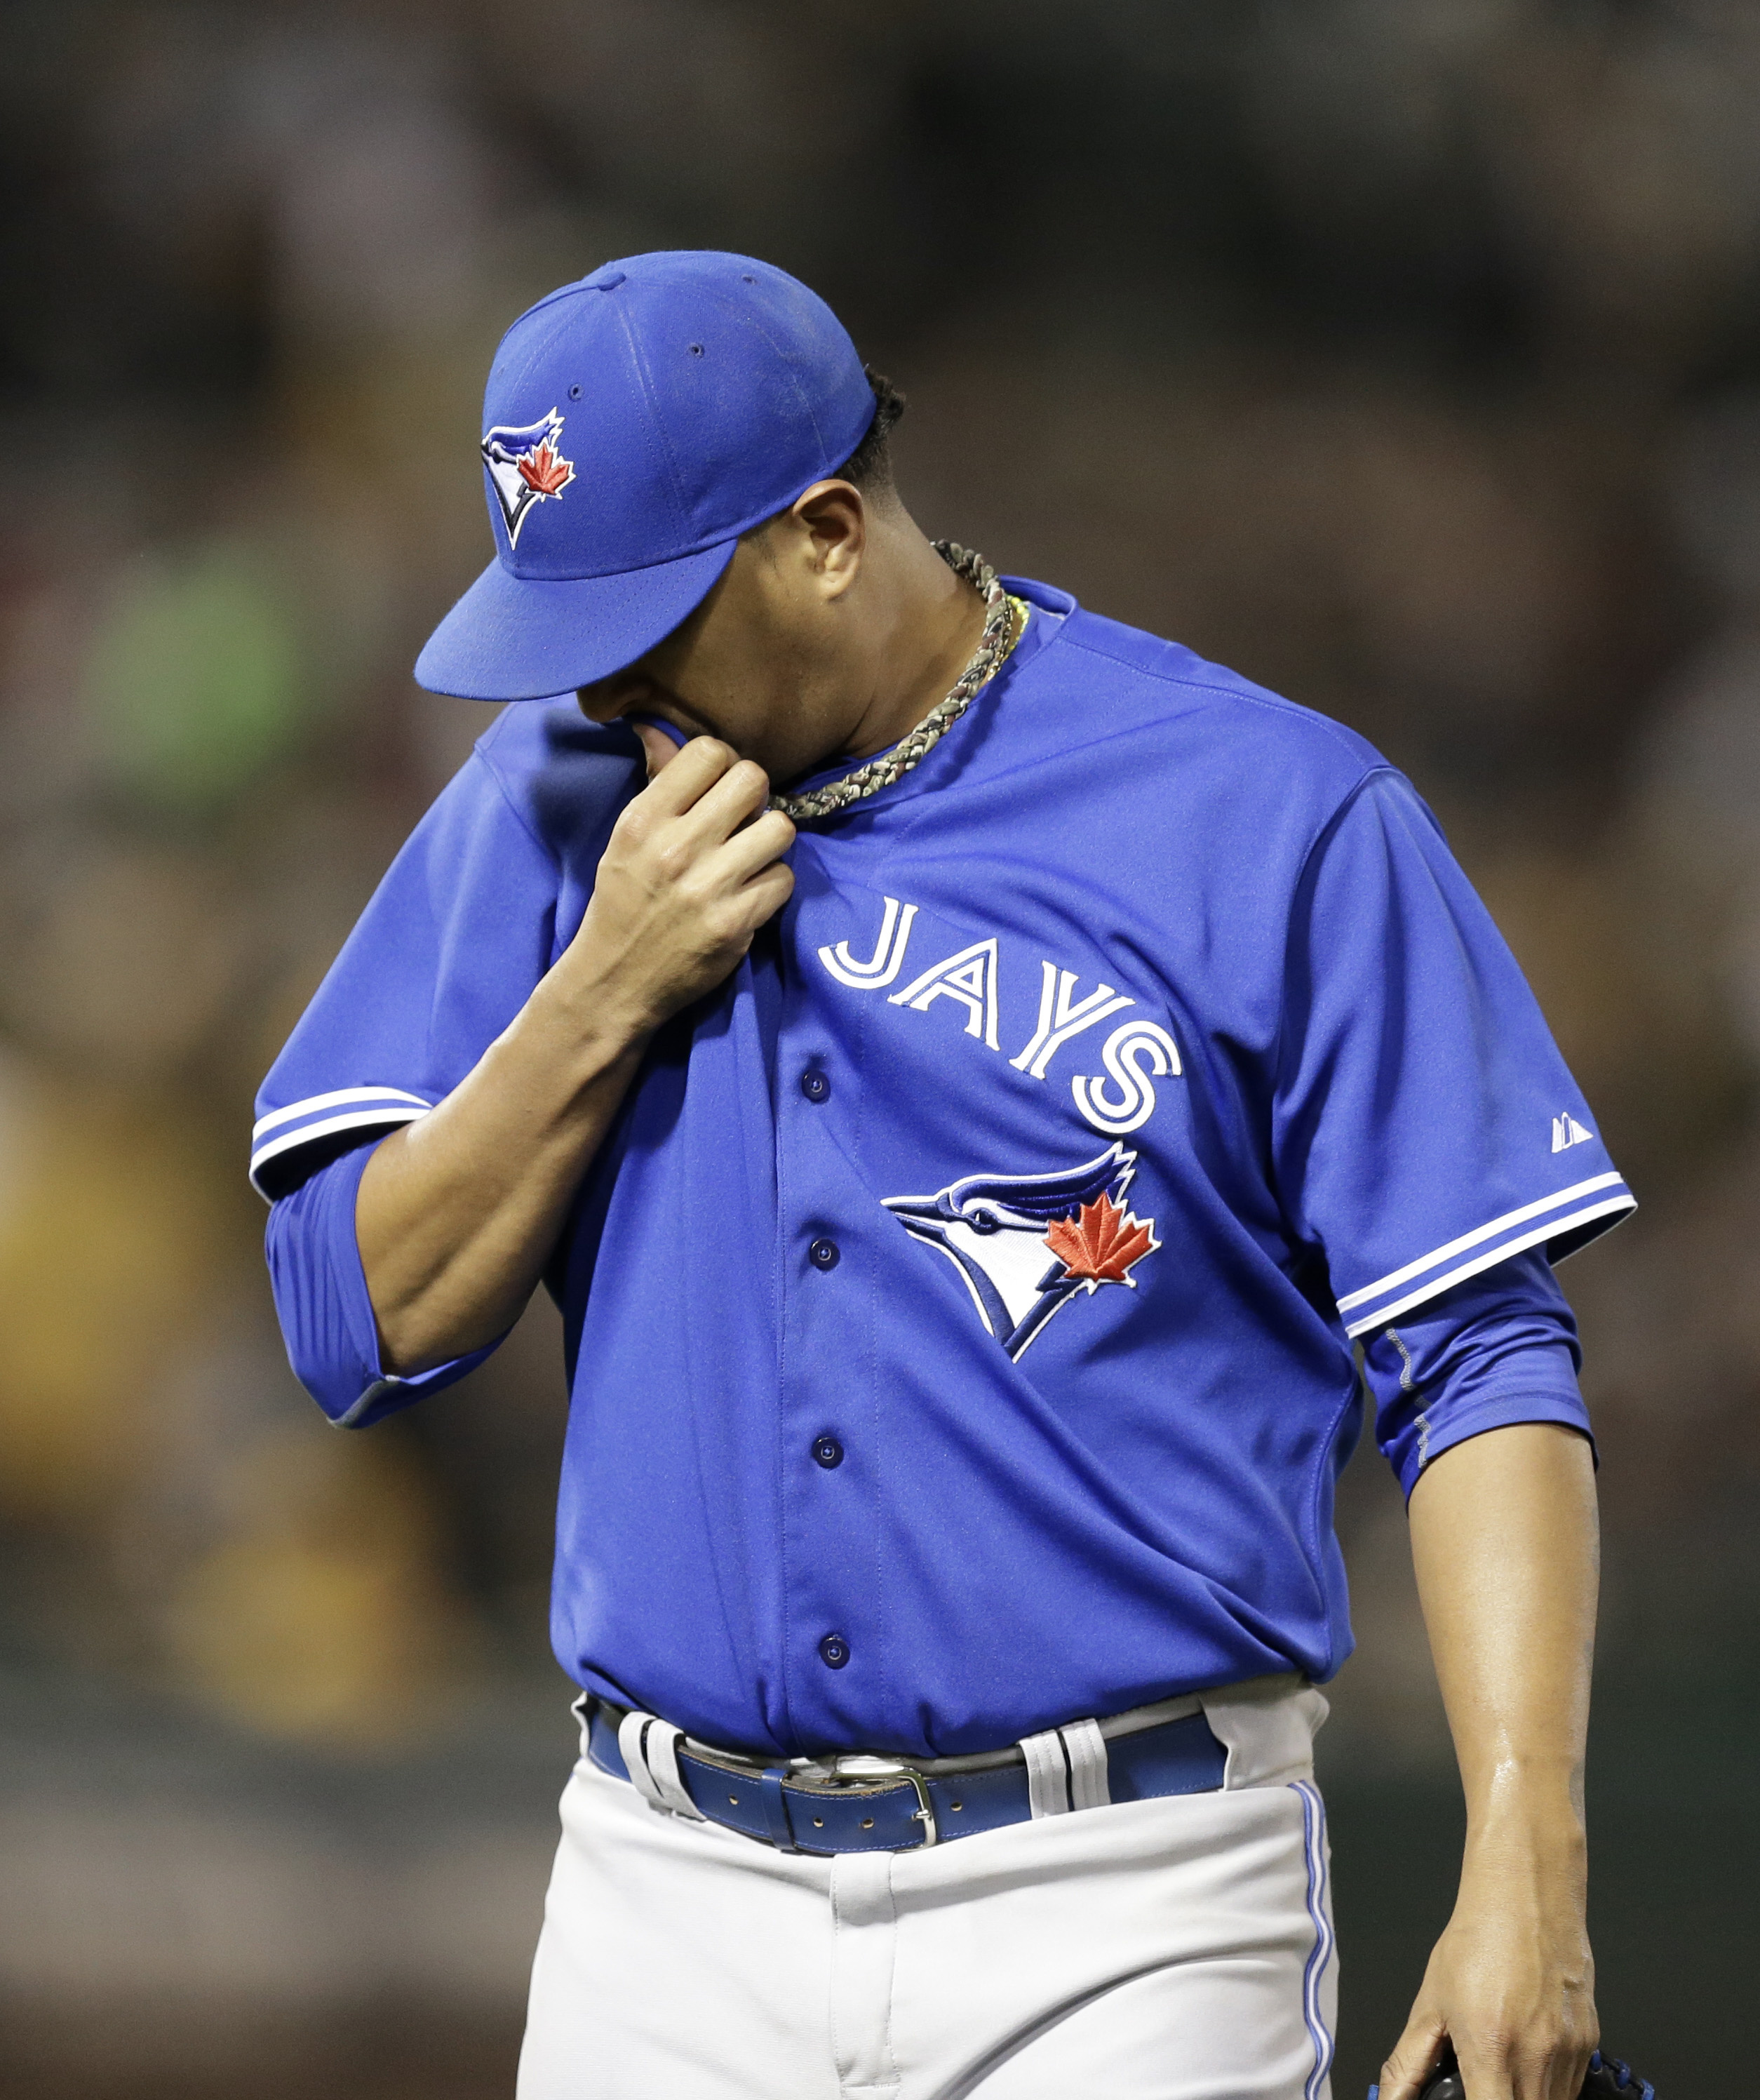 Toronto Blue Jays pitcher Felix Doubront wipes his face on his jersey as he is removed during the fifth inning of a baseball game against the Oakland Athletics on Wednesday, July 22, 2015, in Oakland, Calif. (AP Photo/Ben Margot)